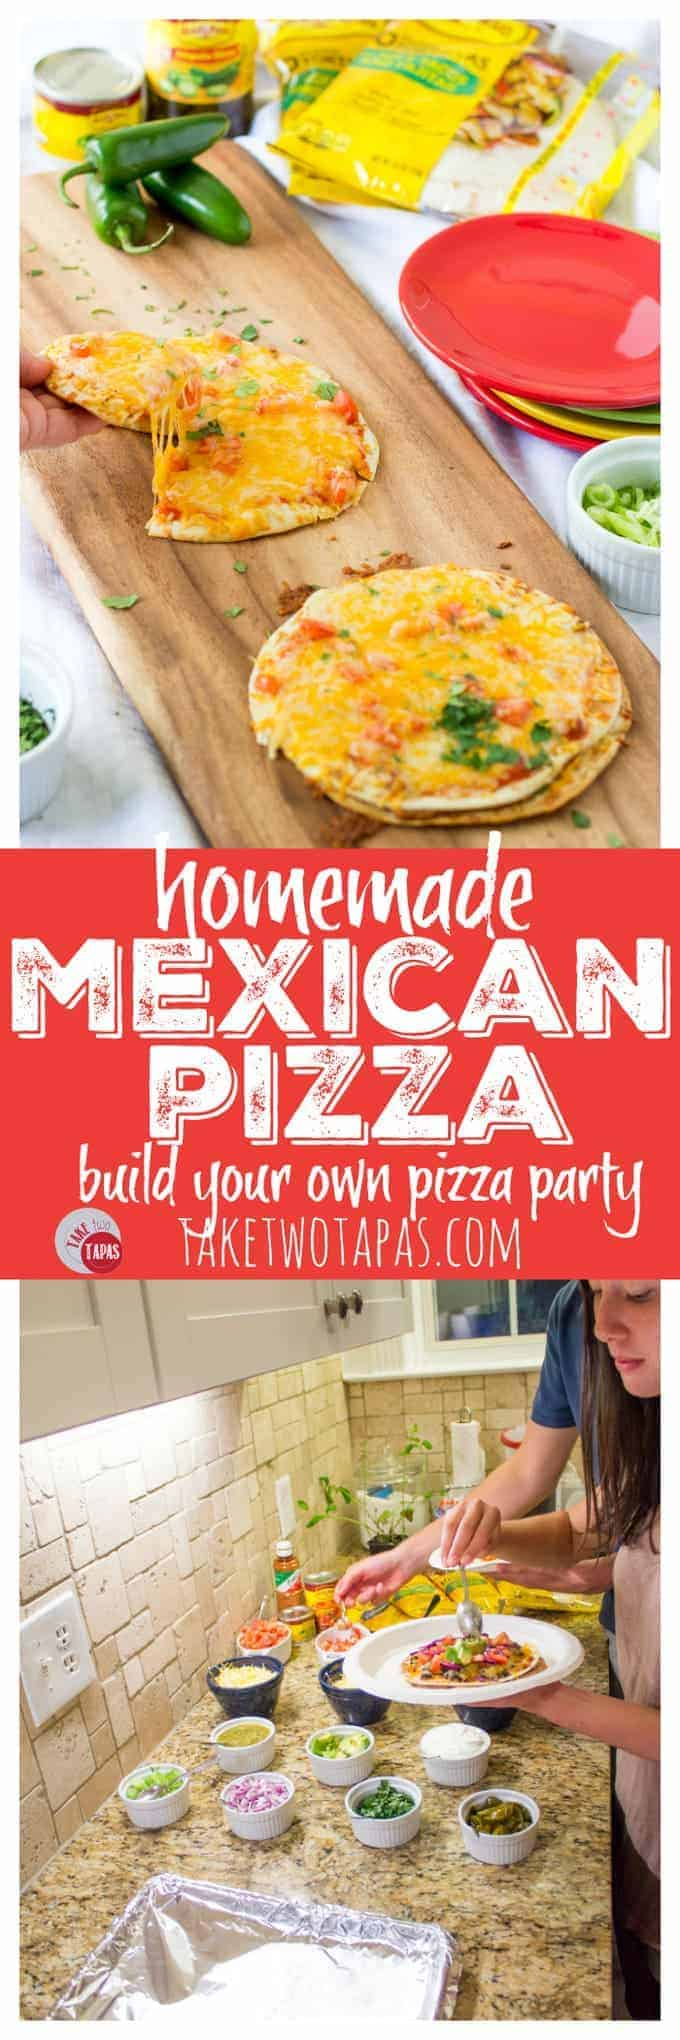 Homemade Mexican Pizza Night | Take Two Tapas